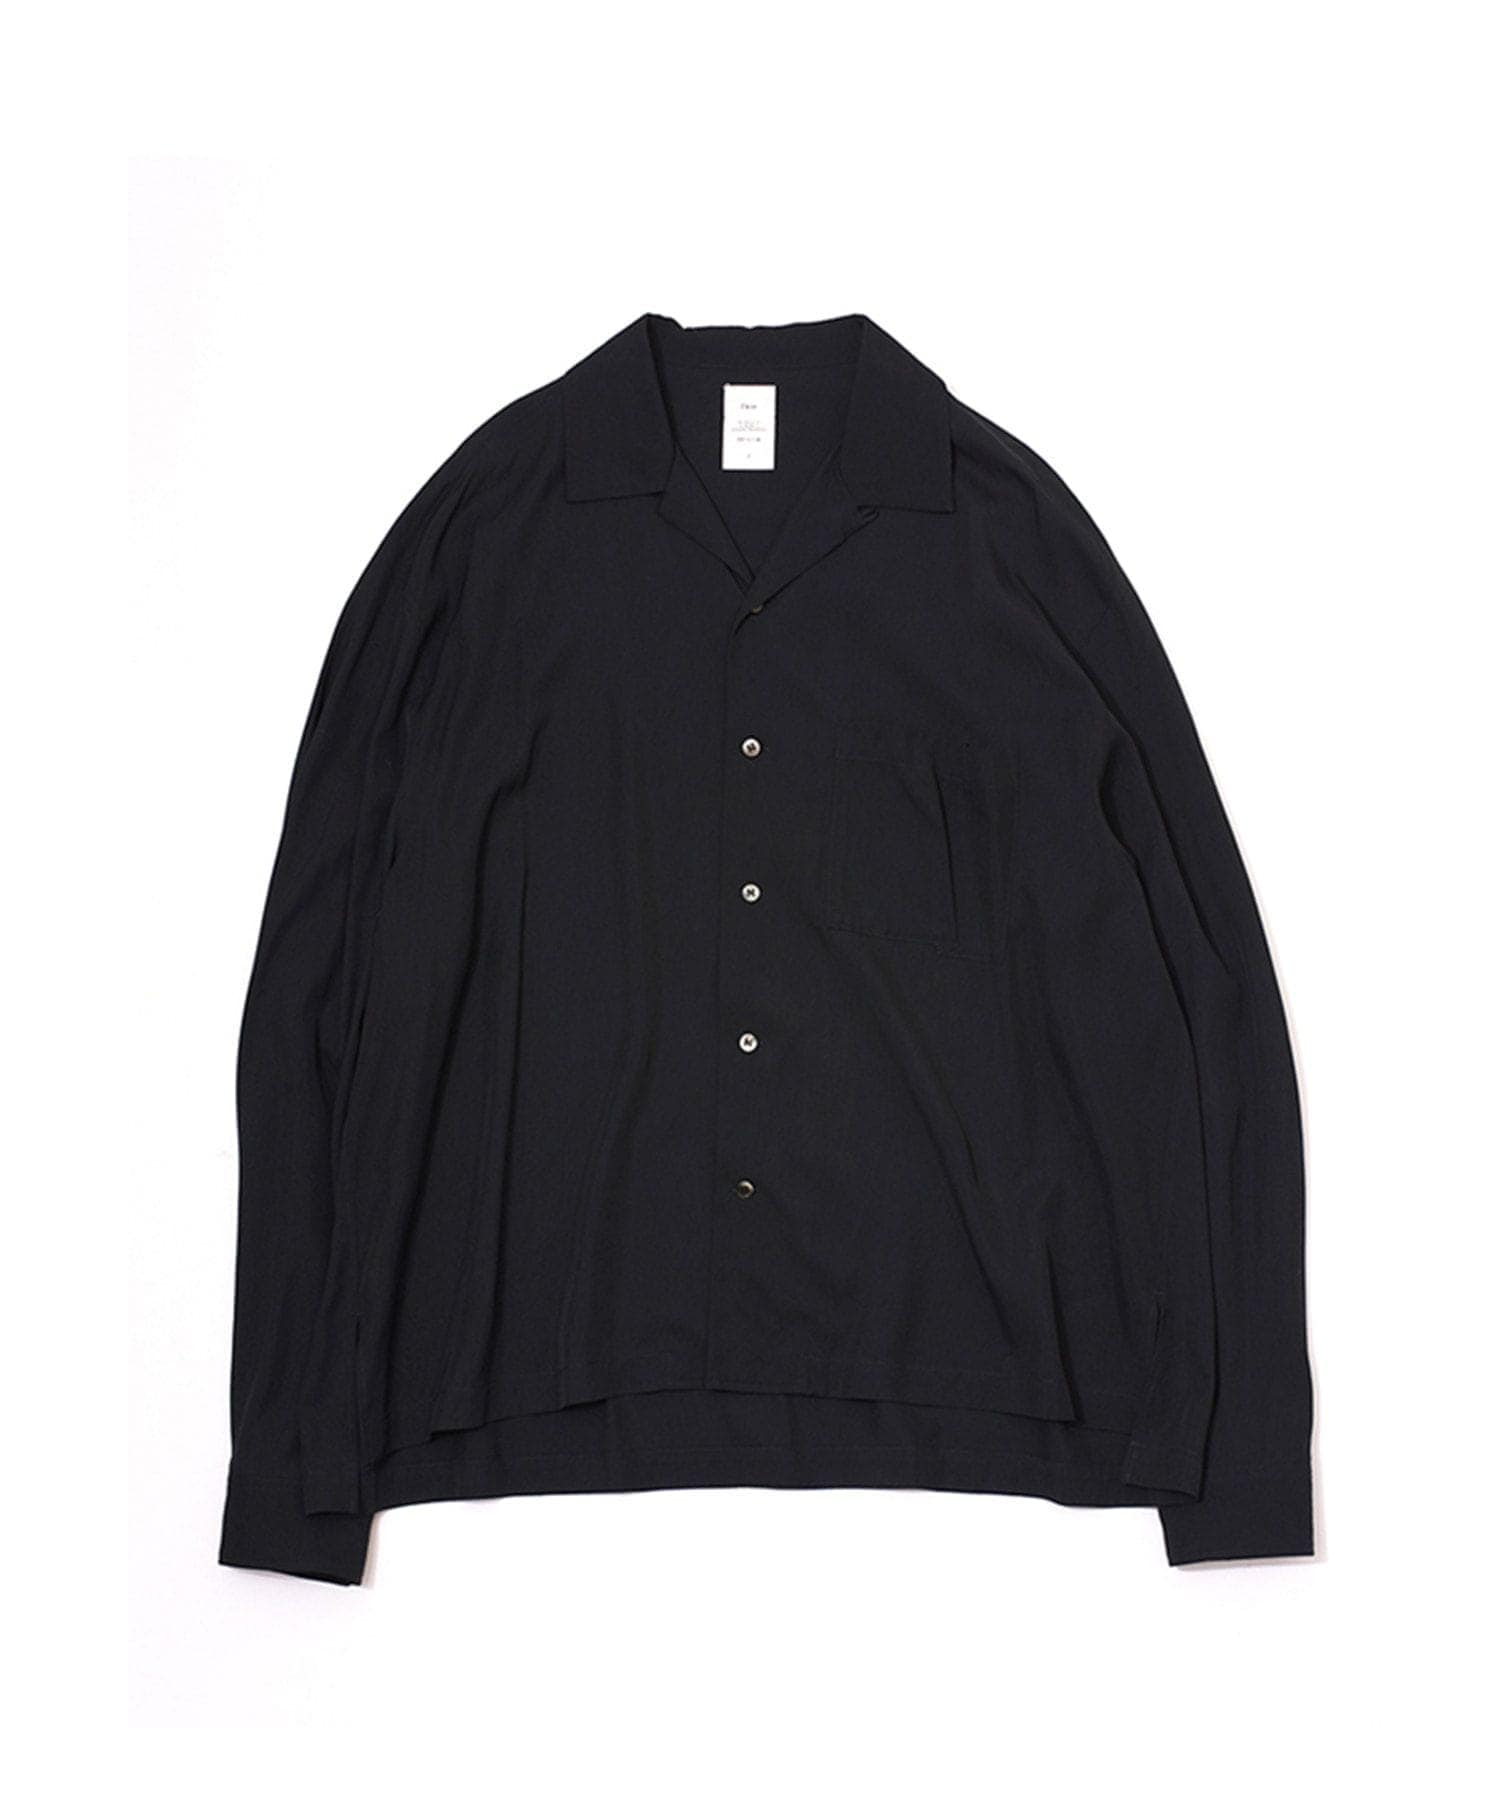 VISCOSE TWILL L/S OPEN COLLAR SH Name.